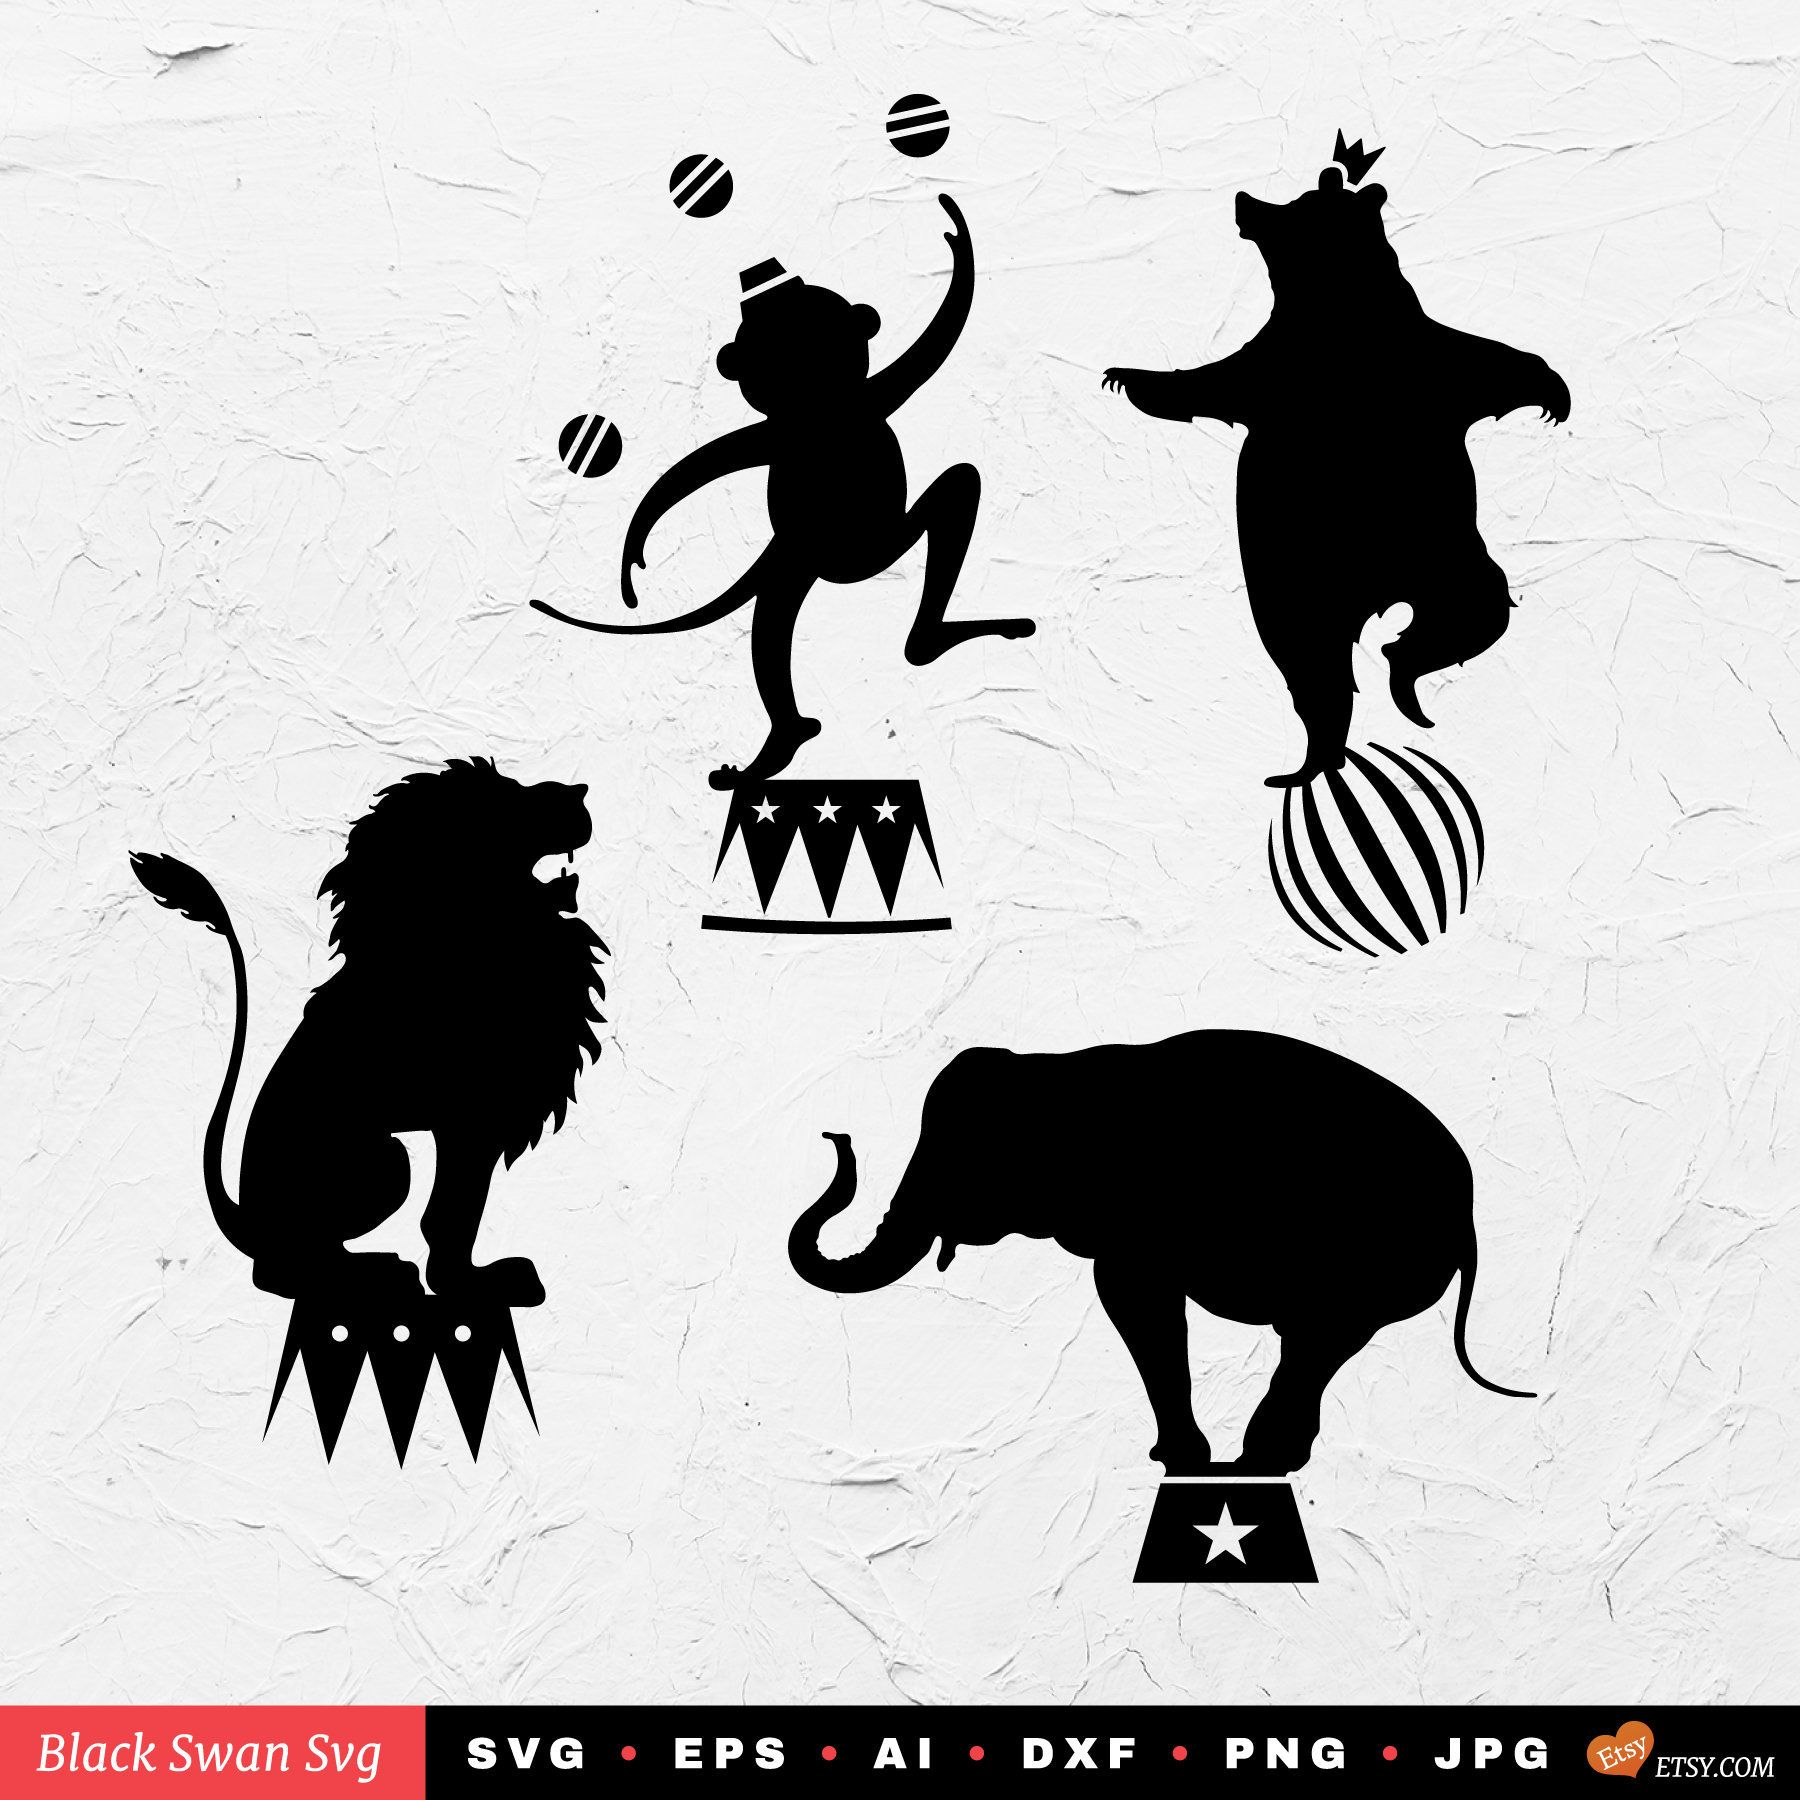 SVG 4 vintage circus silhouettes Vector file for cricut